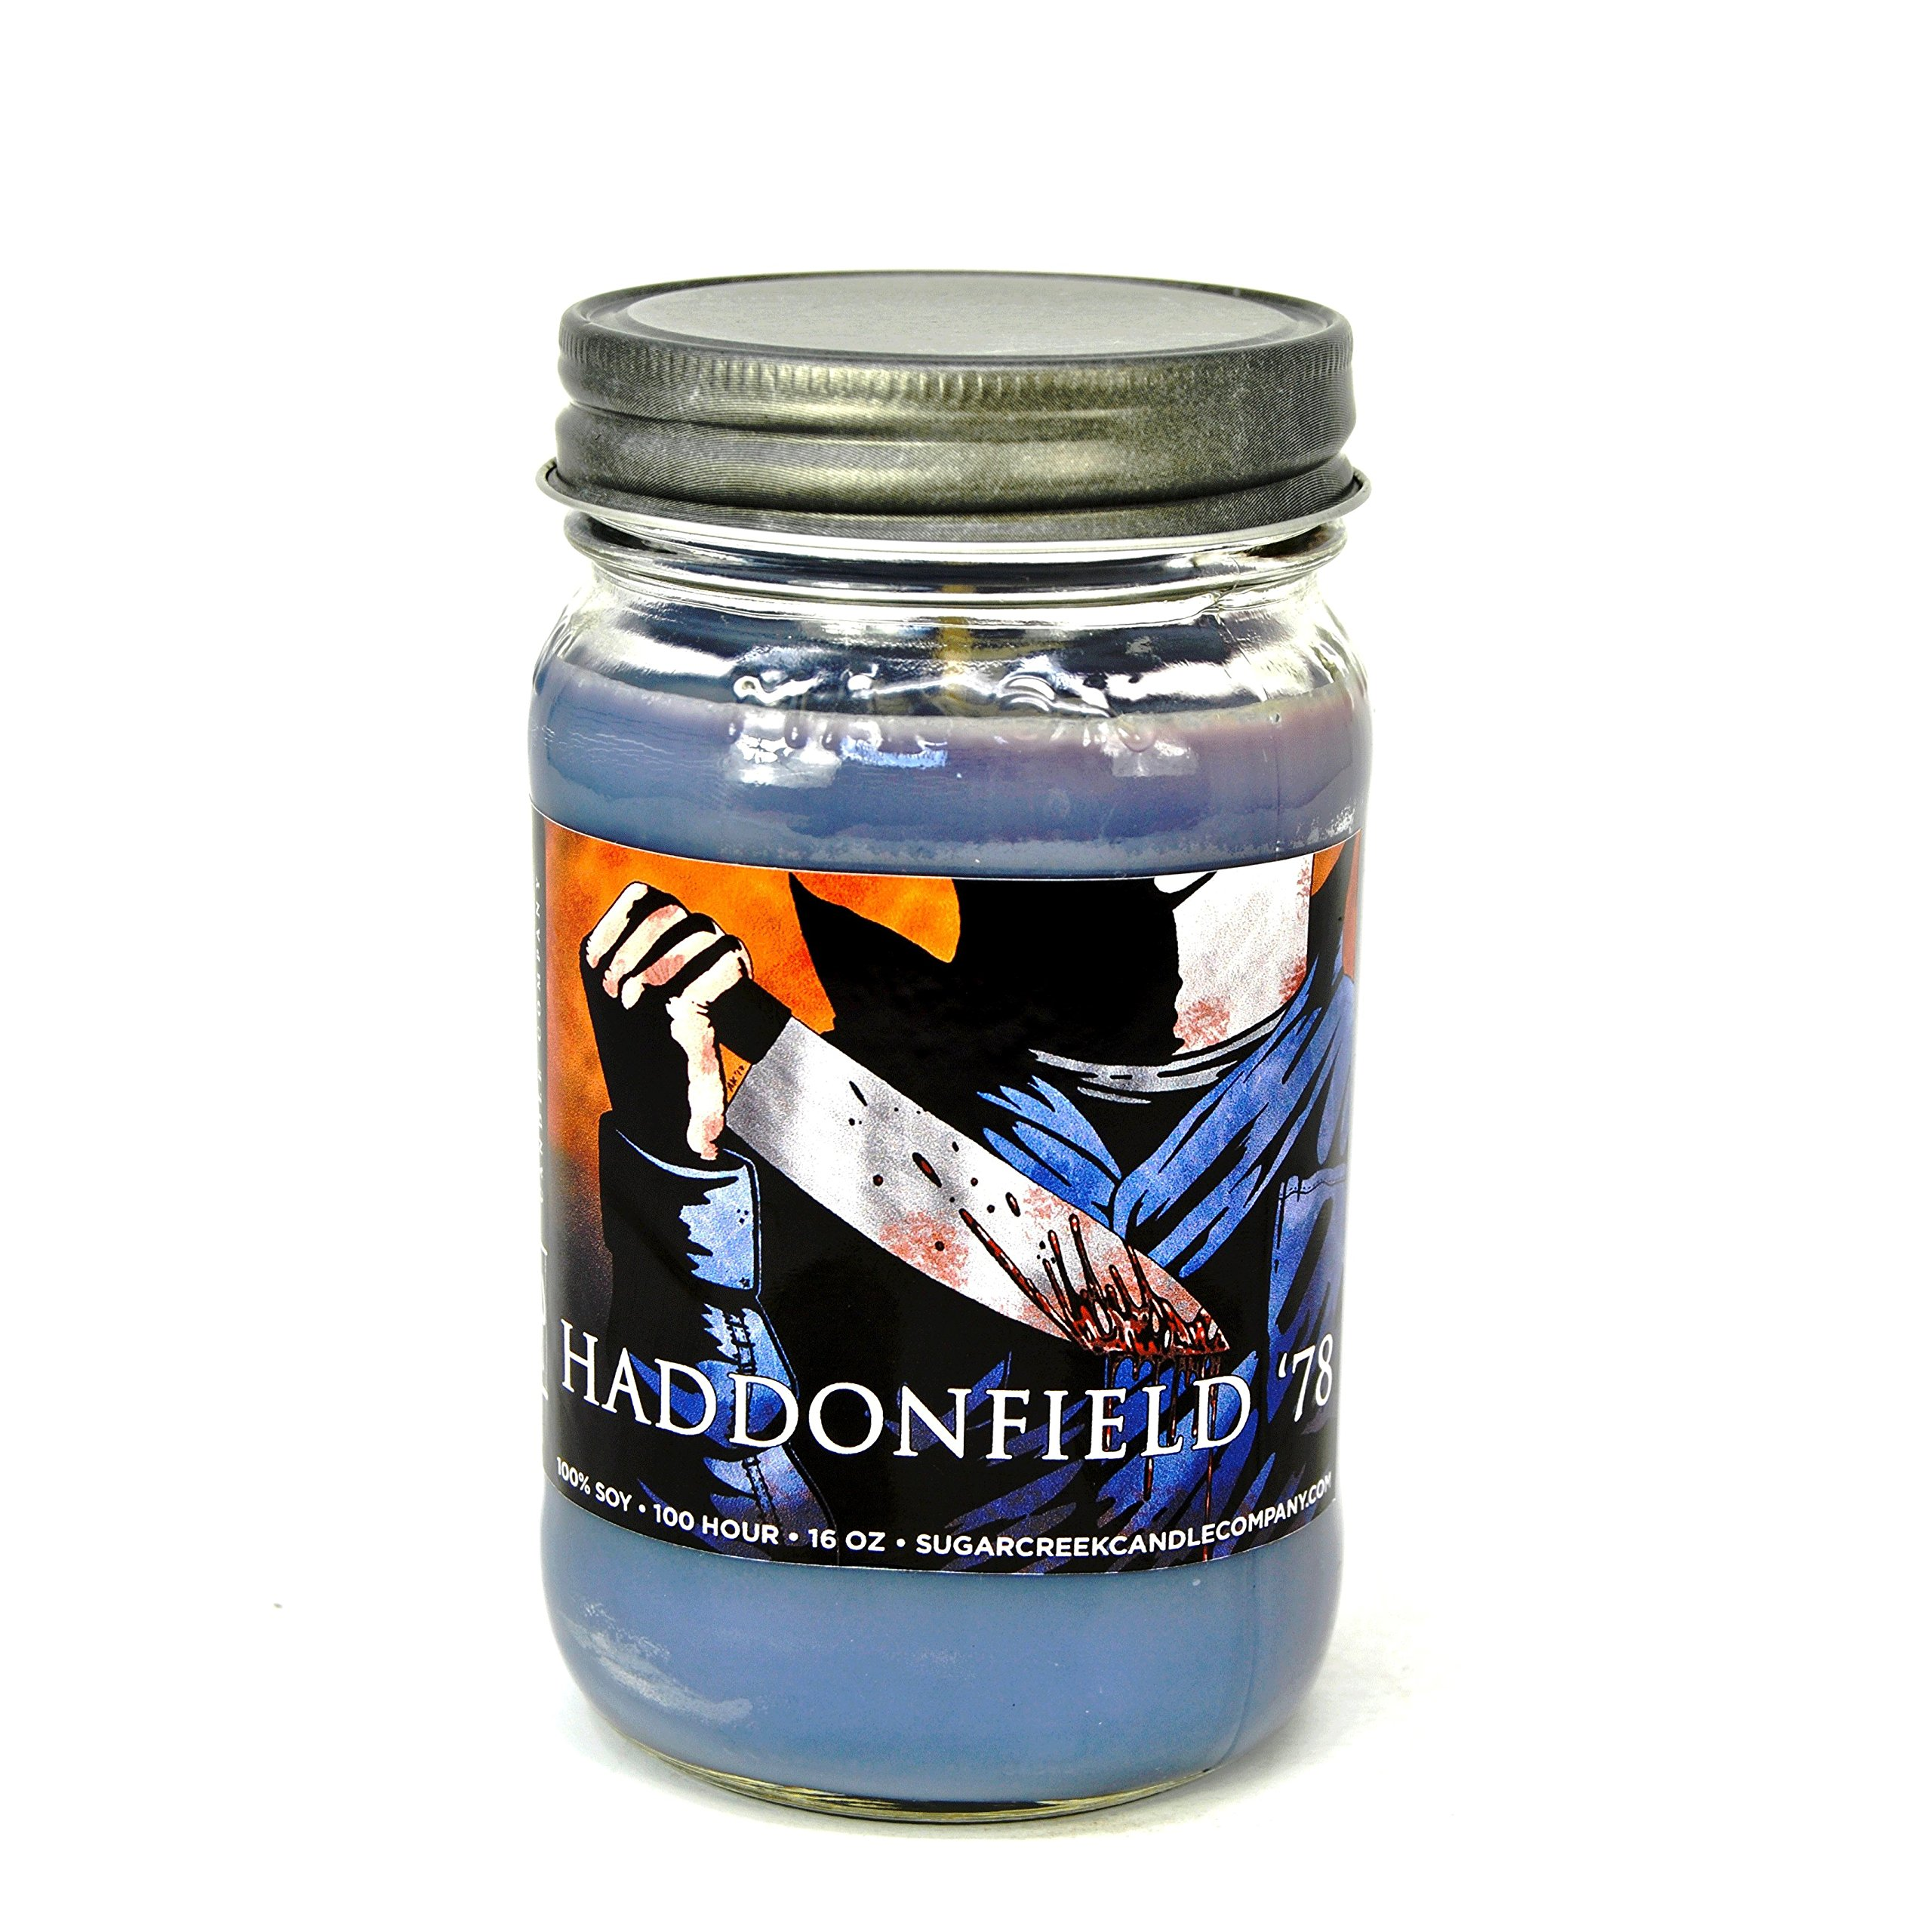 Sugar Creek Candles Haddonfield 78 (Halloween the Movie) 100% Soy Wax Candle. Soy Candles Burn Cleaner ~ Longer ~ Non-Toxic ~ THE ORIGINAL 100% Yinzer Made in USA. Gift For Any Occasion